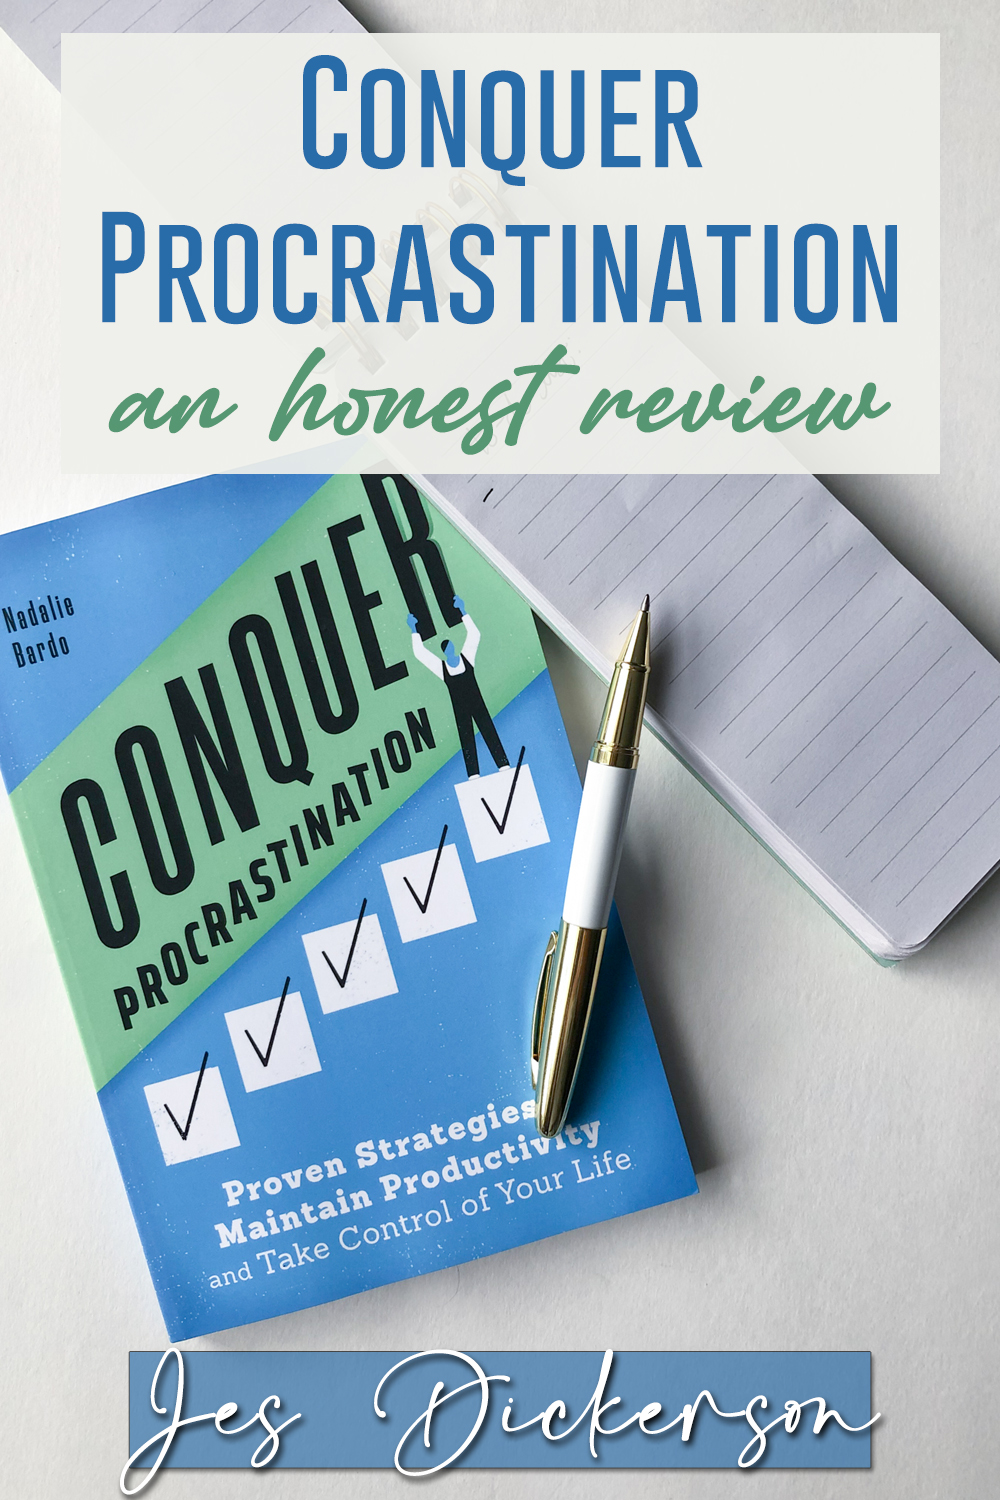 conquer procrastination: the book you need to read right now